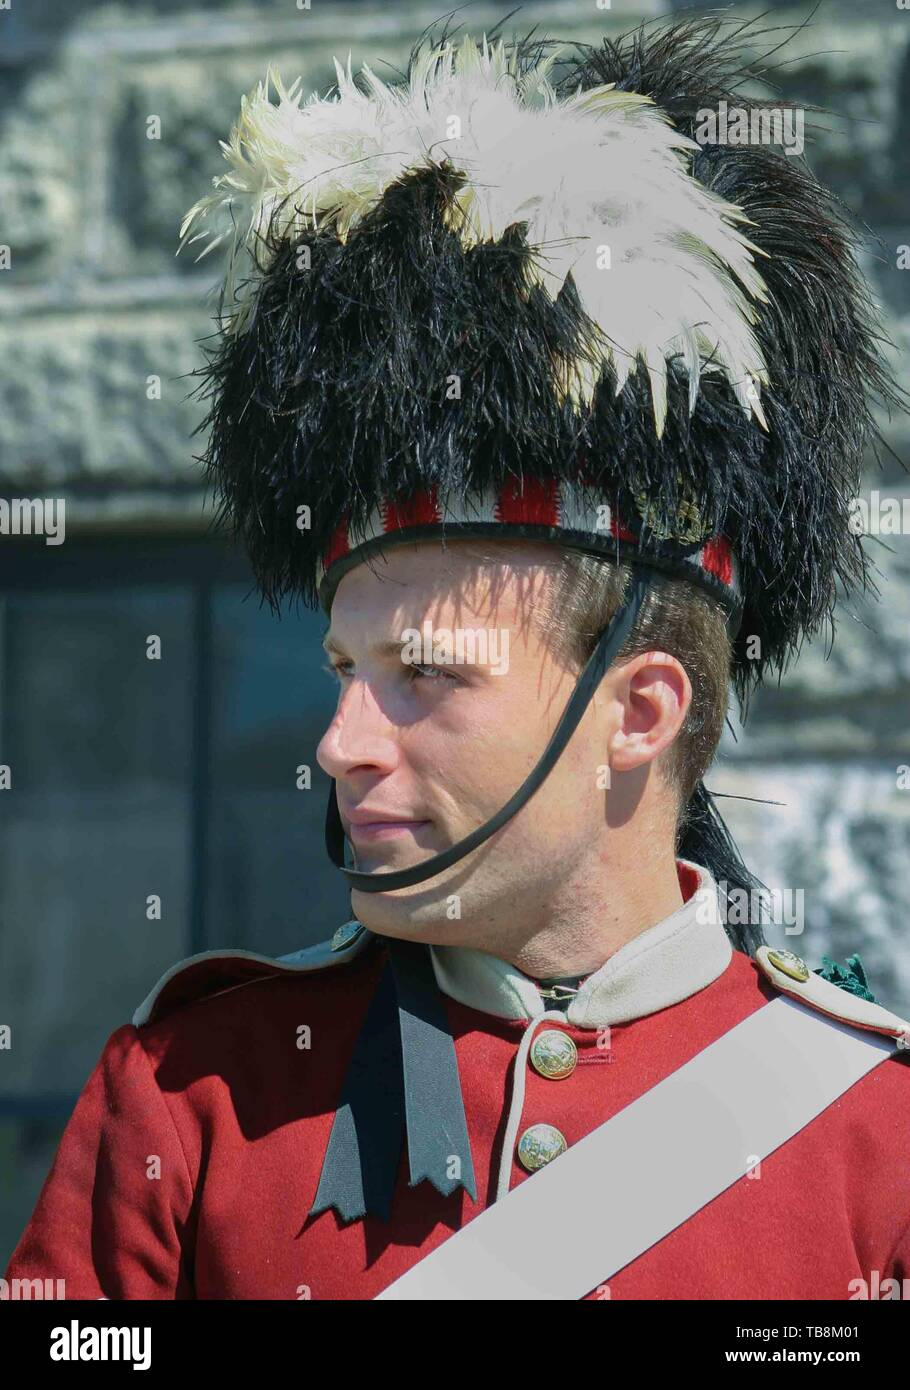 Halifax, Nova Scotia, Canada. 5th Sep, 2005. Portrait of a re-enactor, dressed in the uniform of the 78th Highlanders. They perform for tourists on Citadel Hill (Fort George), a National Historic Site in Halifax, Nova Scotia. A living history museum, the fort is among the most visited sites in Atlantic Canada. Credit: Arnold Drapkin/ZUMA Wire/Alamy Live News - Stock Image